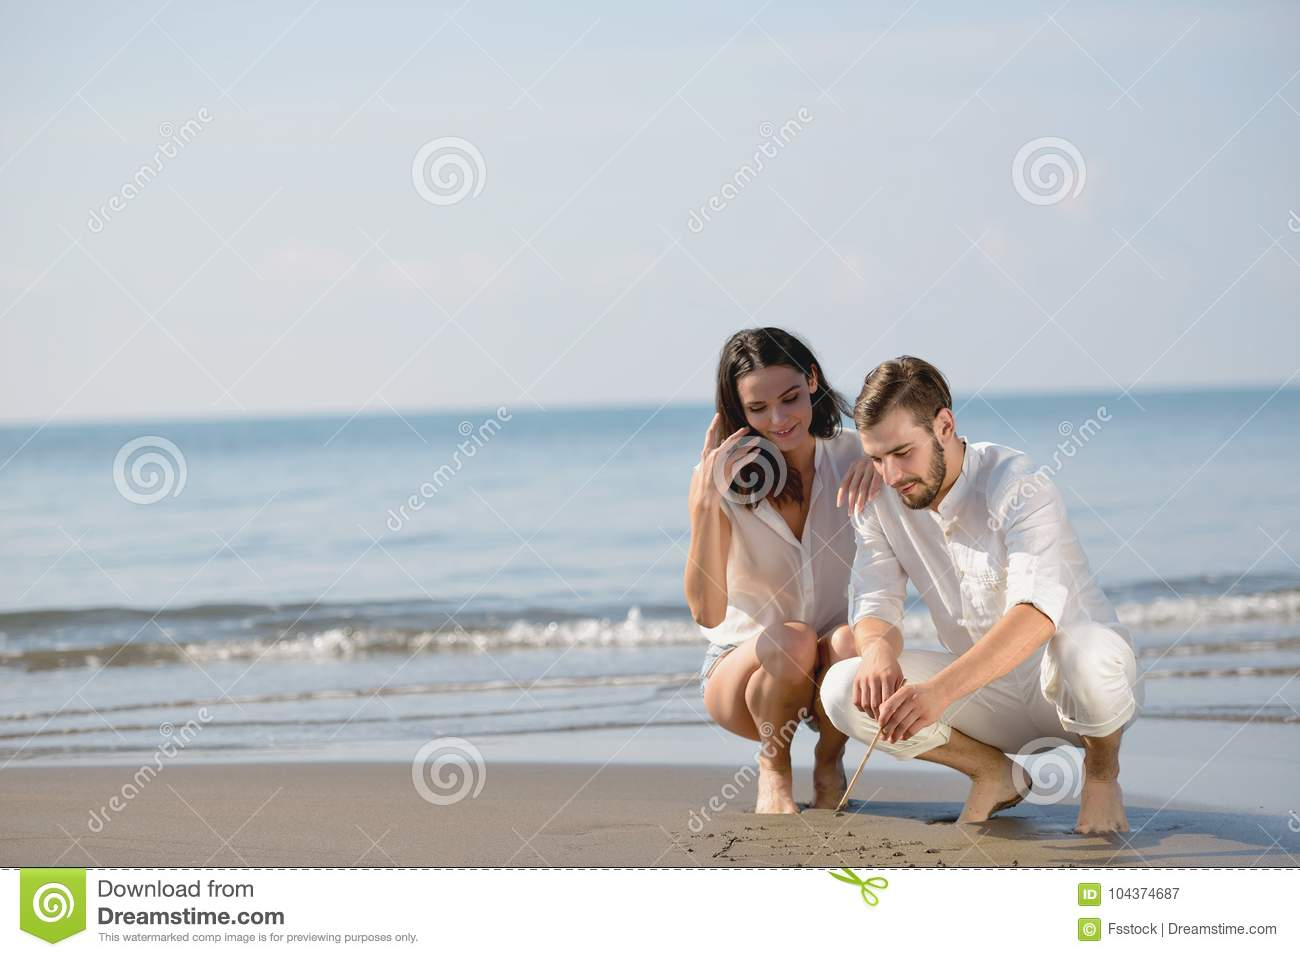 Romantic Young Couple Draw Heart Shapes In The Sand While On